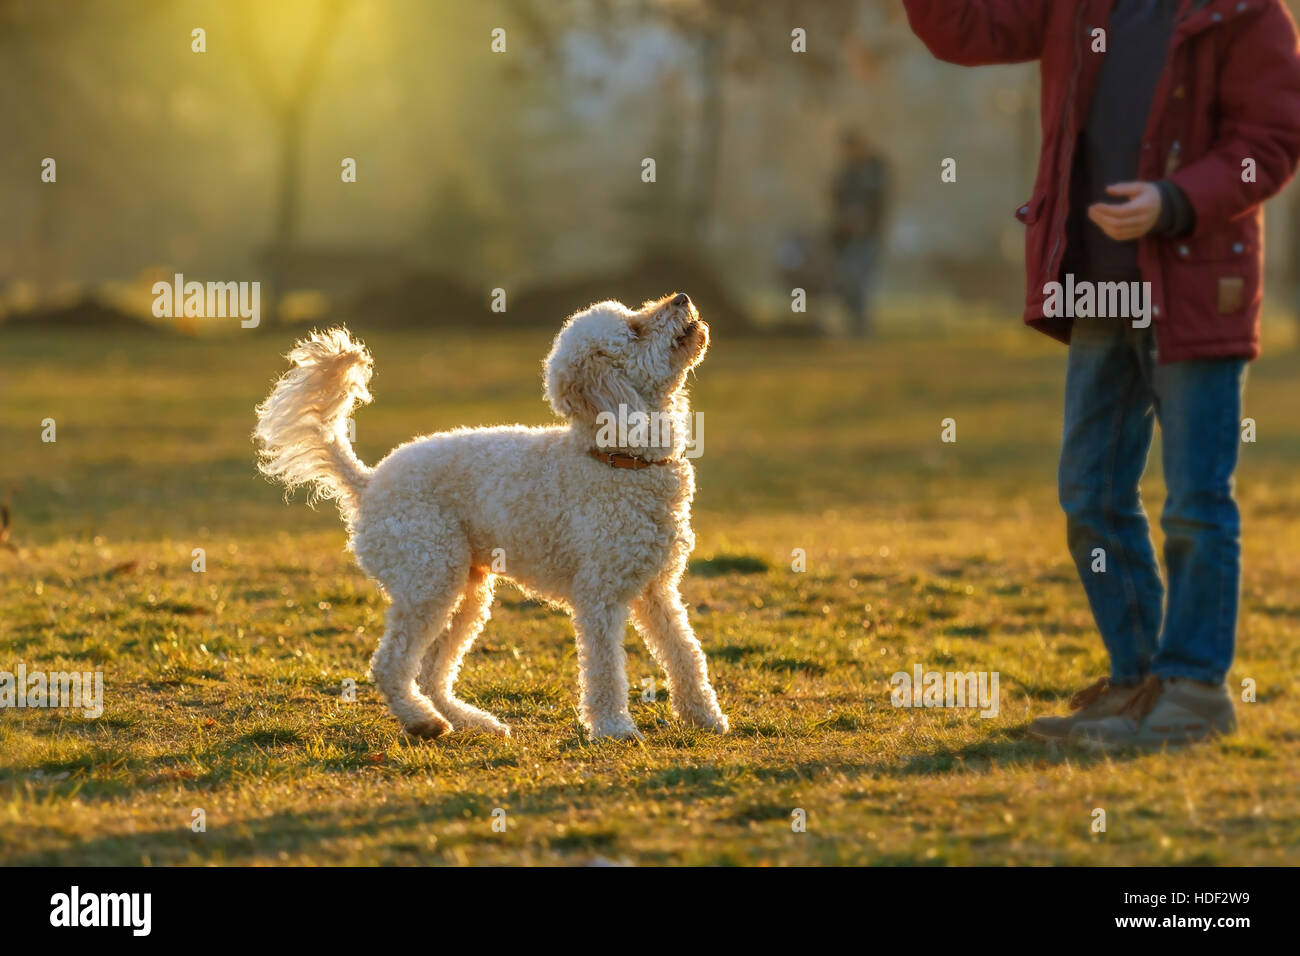 White poodle dog outdoors on green grass - Stock Image